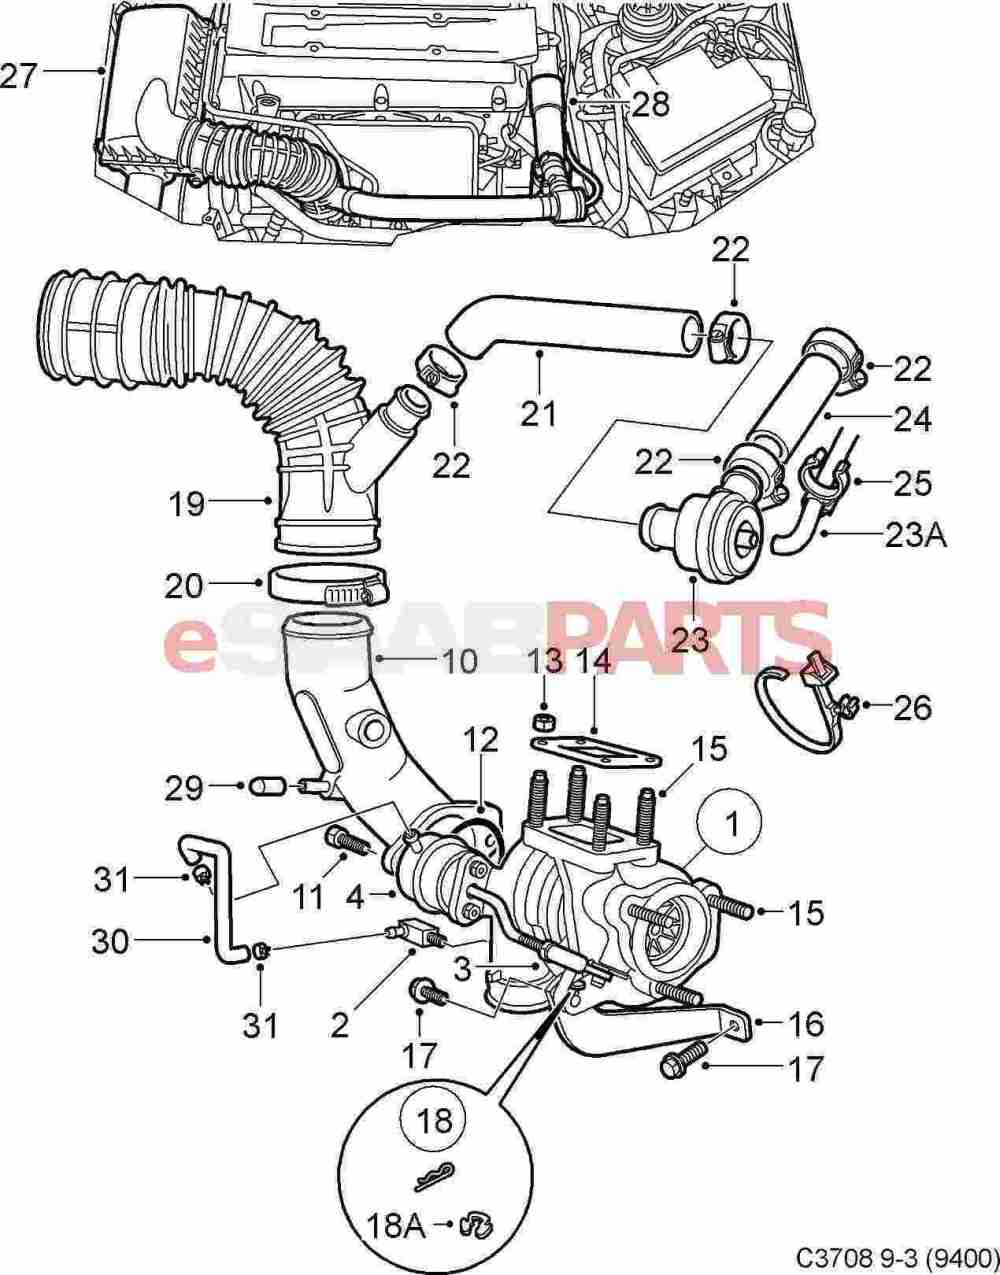 medium resolution of saab 93 engine diagram 8 18 artatec automobile de u2022saab 9 3 2003 turbo diagram